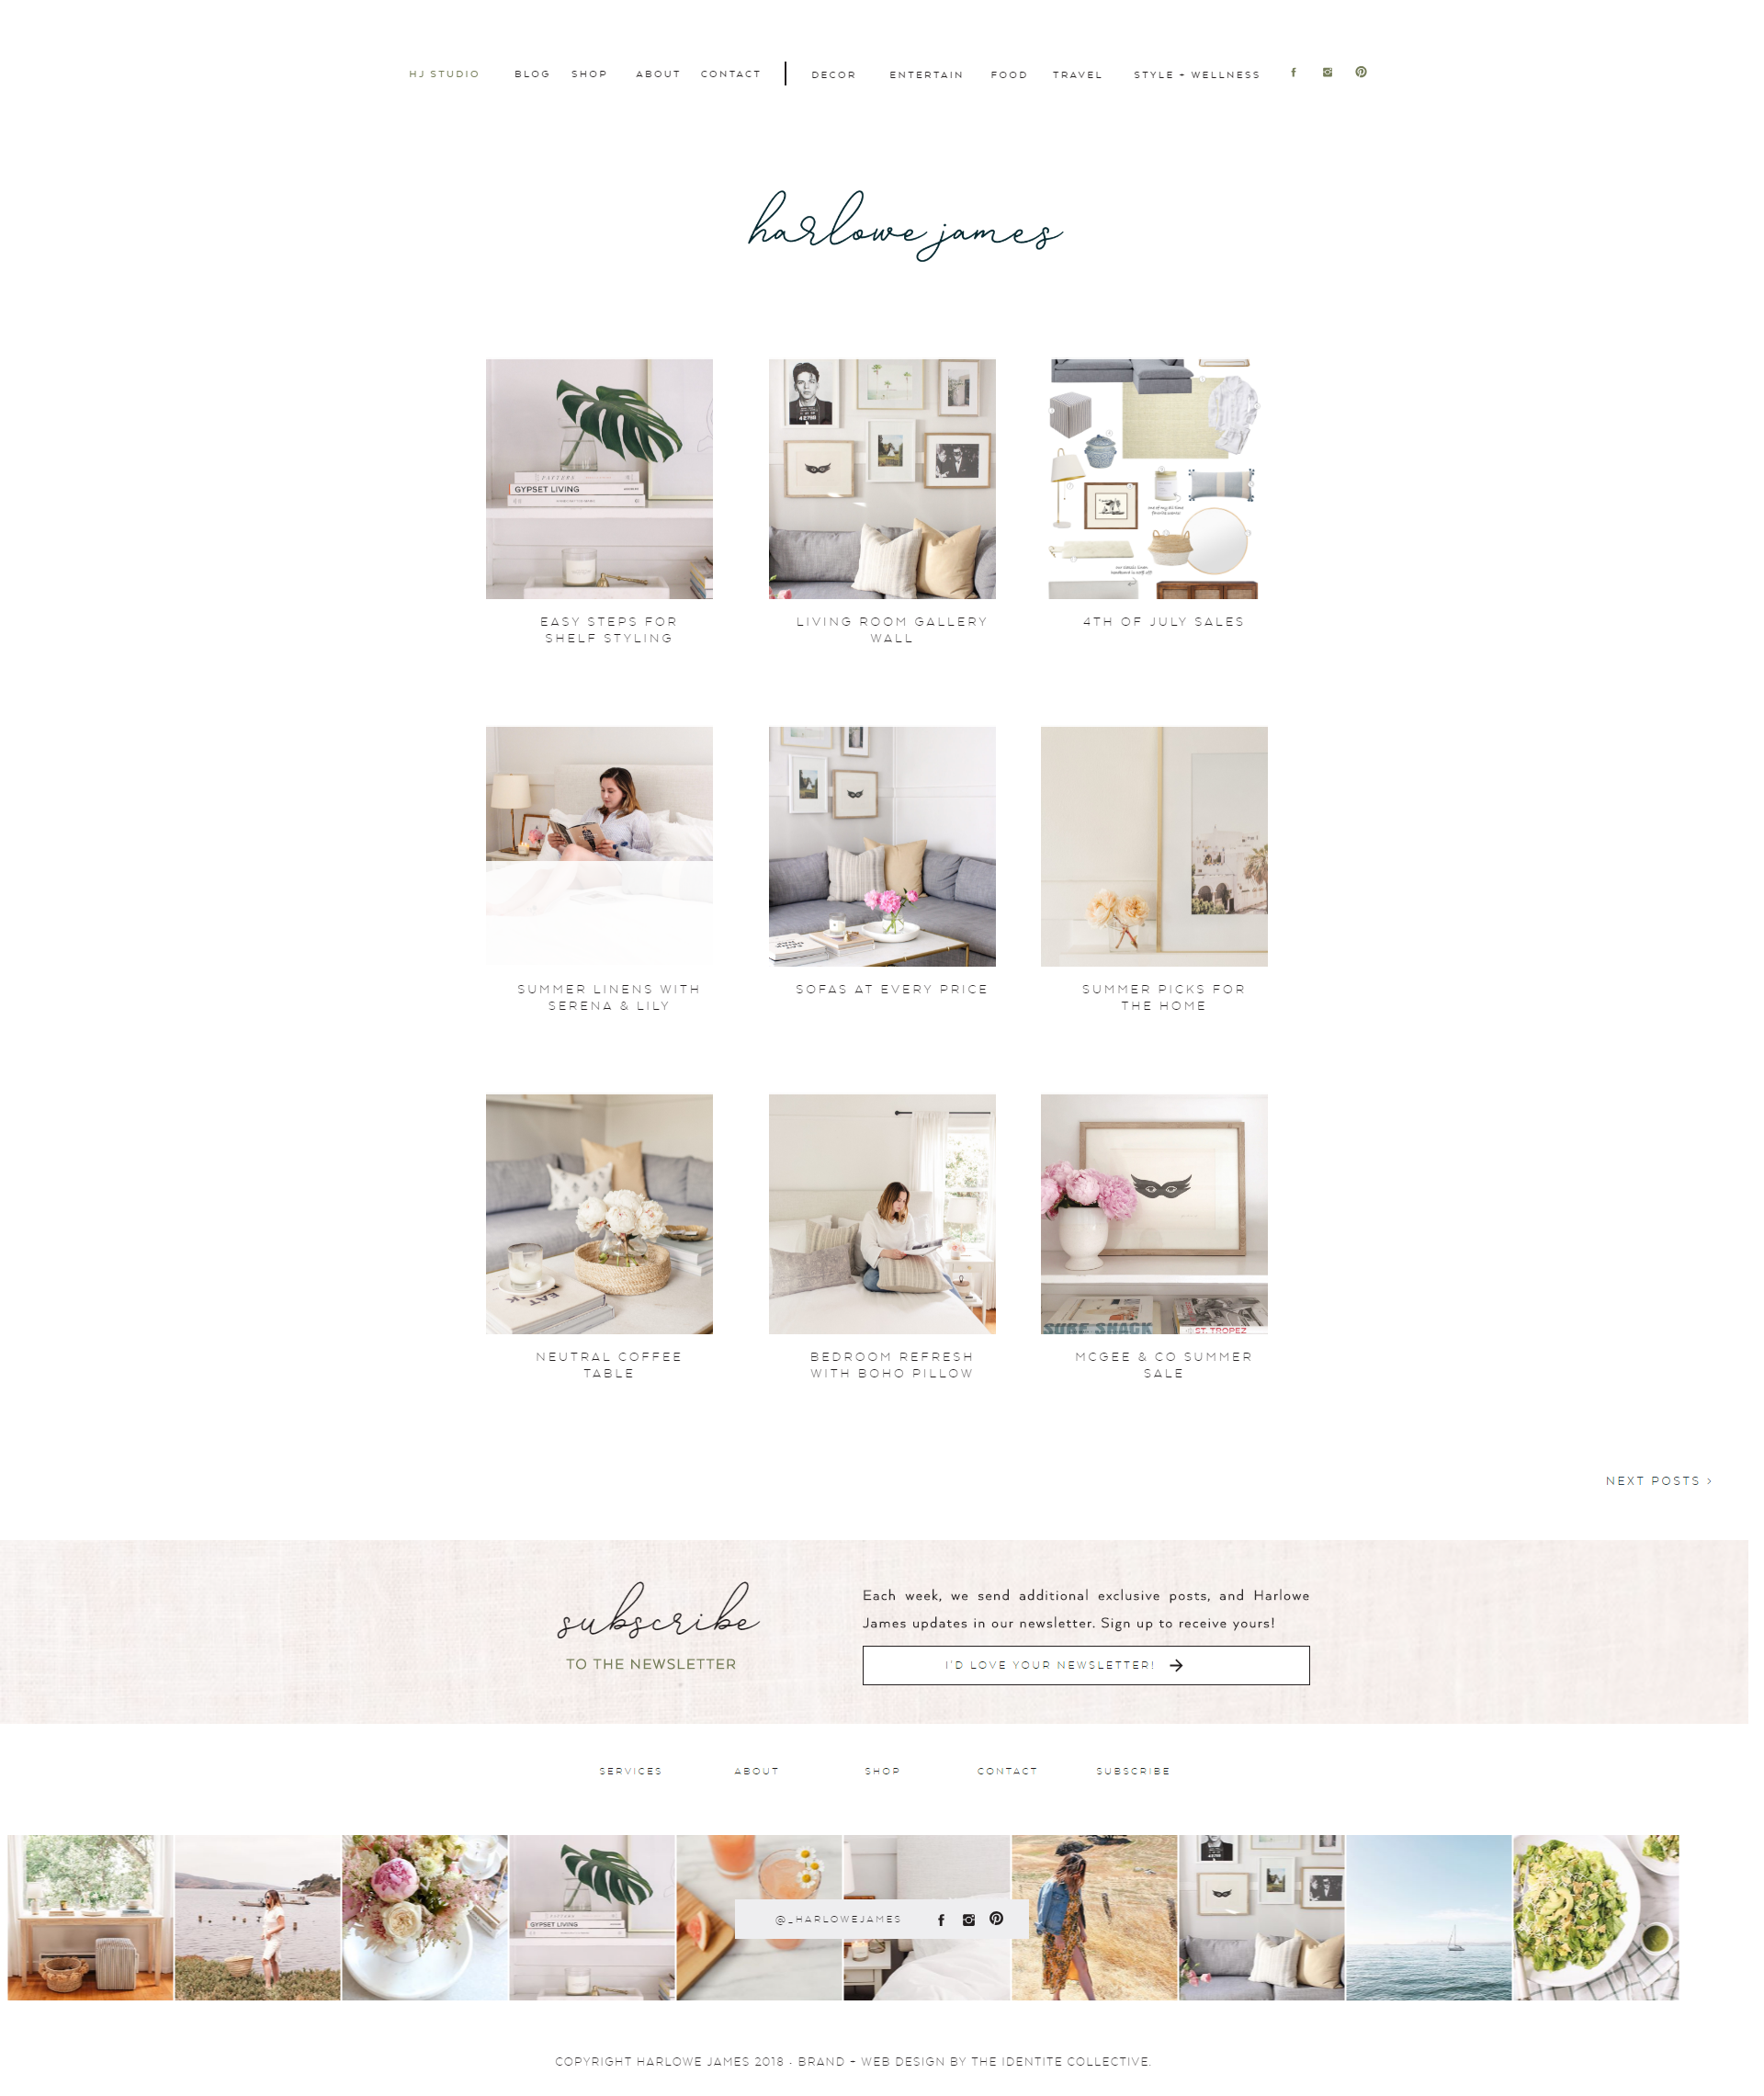 The Identite Collective Branding Web Design And Content Creation For Interior Designers And Lifestyle Brands Harlowe James Blog Web De Web Design Web Design Company Design Inspiration